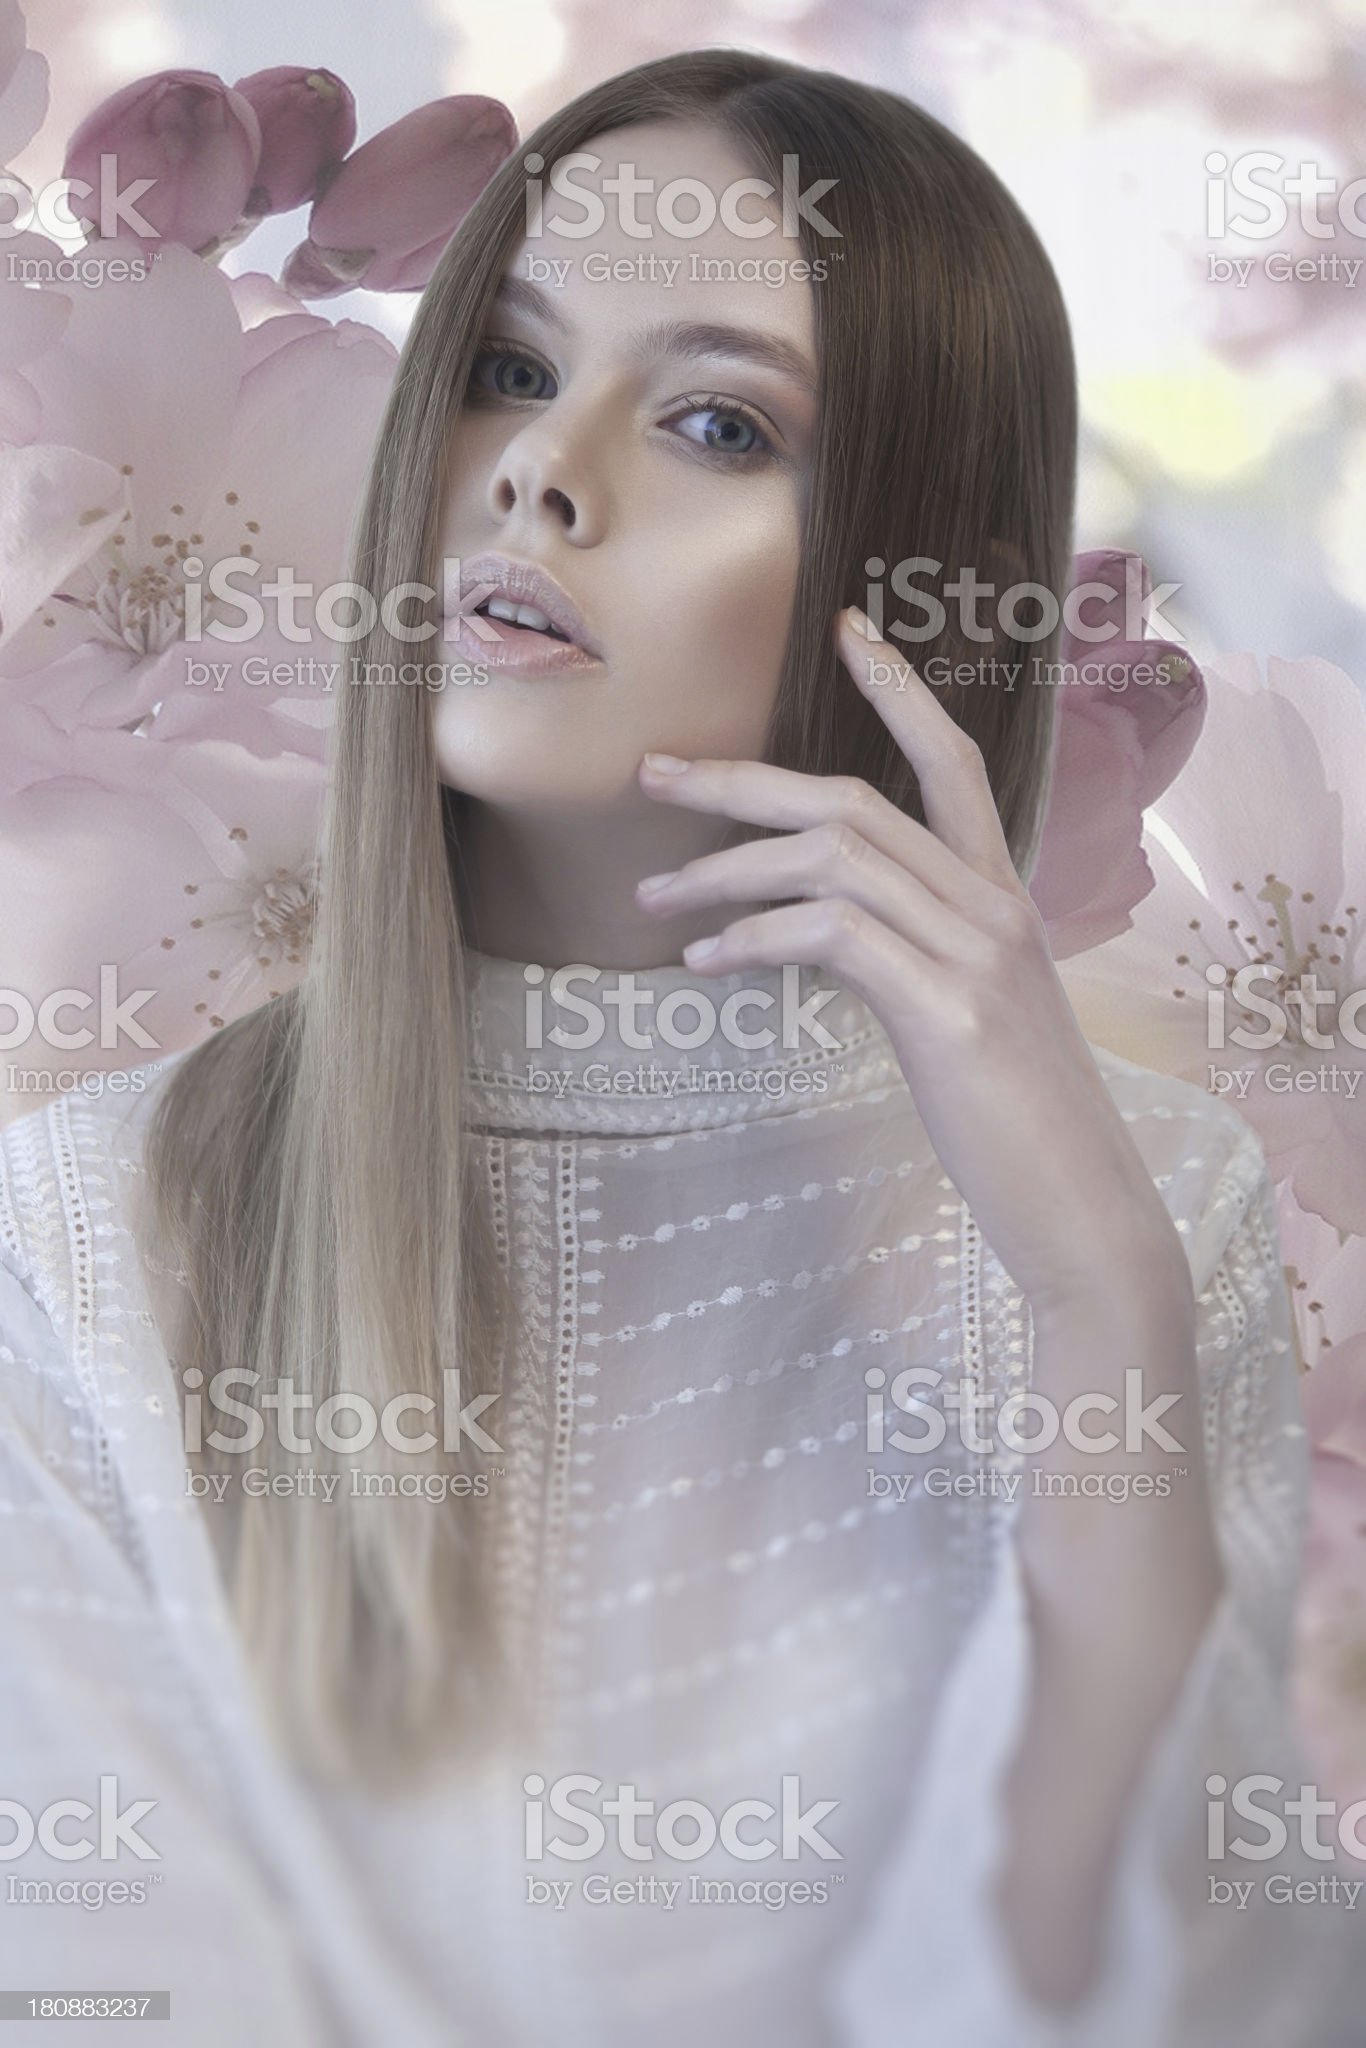 Pretty woman with hand near her face and flower background royalty-free stock photo